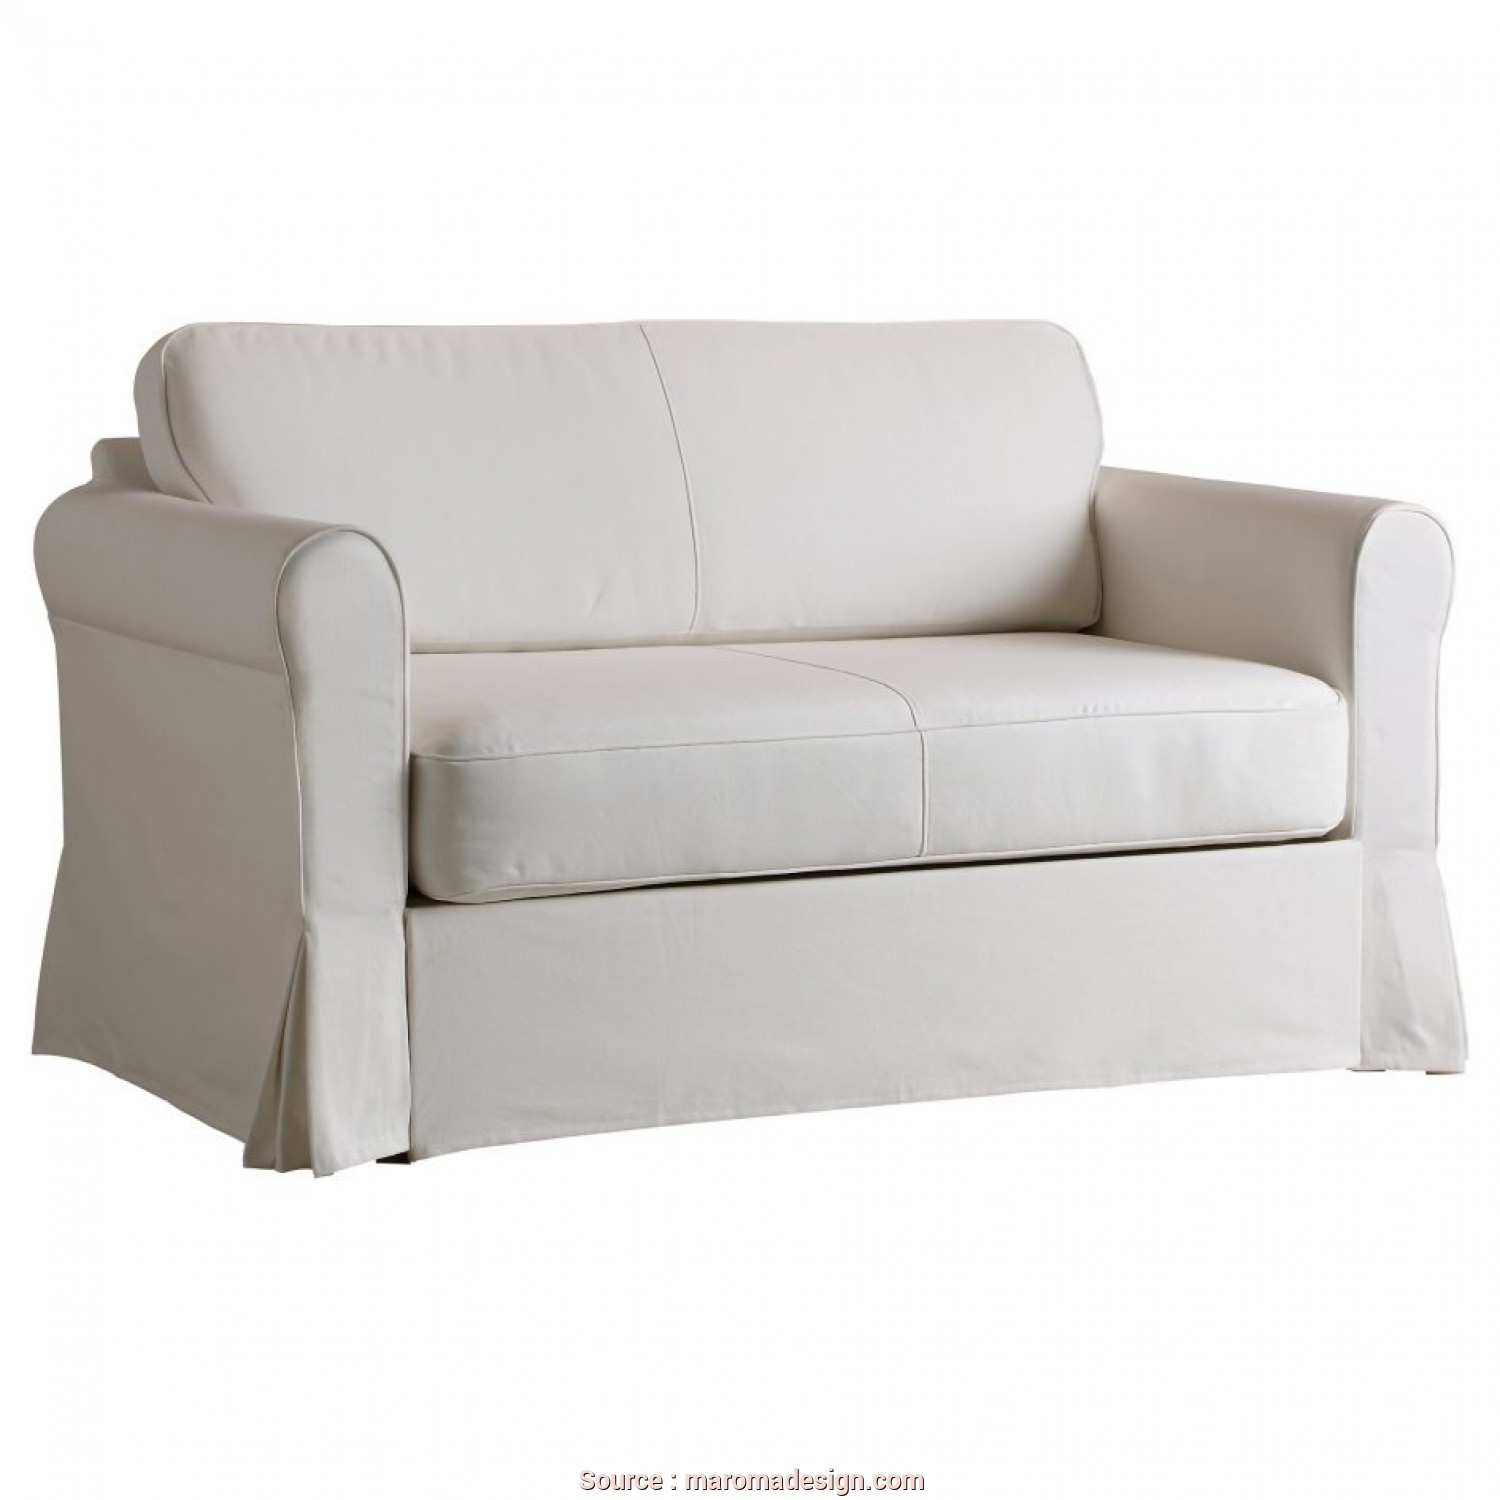 Ikea Futon Couch, Completare Seating, Inspirations Ikea Loveseat Sleeper Sofas Best, Newest Furniture Sofa White Then Intended For